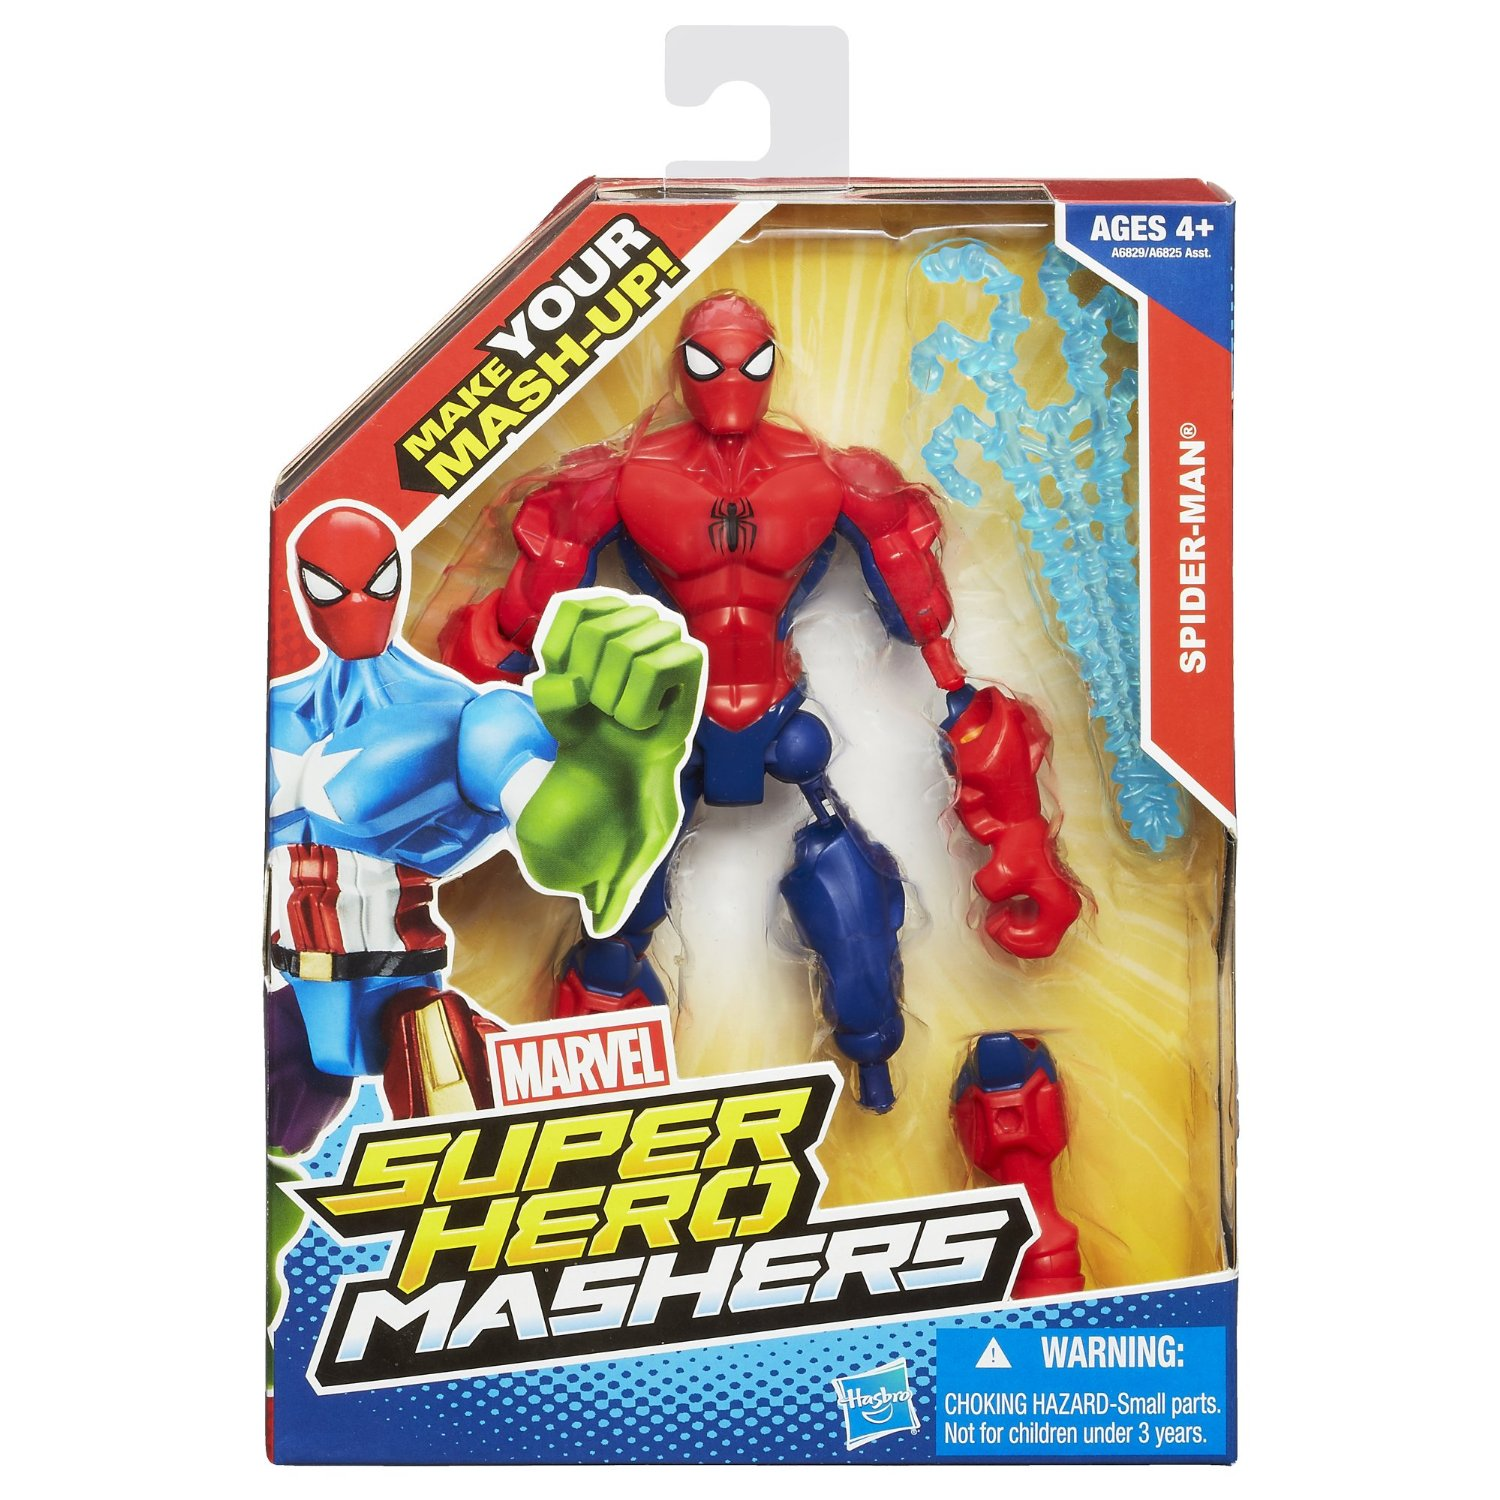 Best Super Hero Toys And Action Figures : The coolest spiderman toys you can get for your children